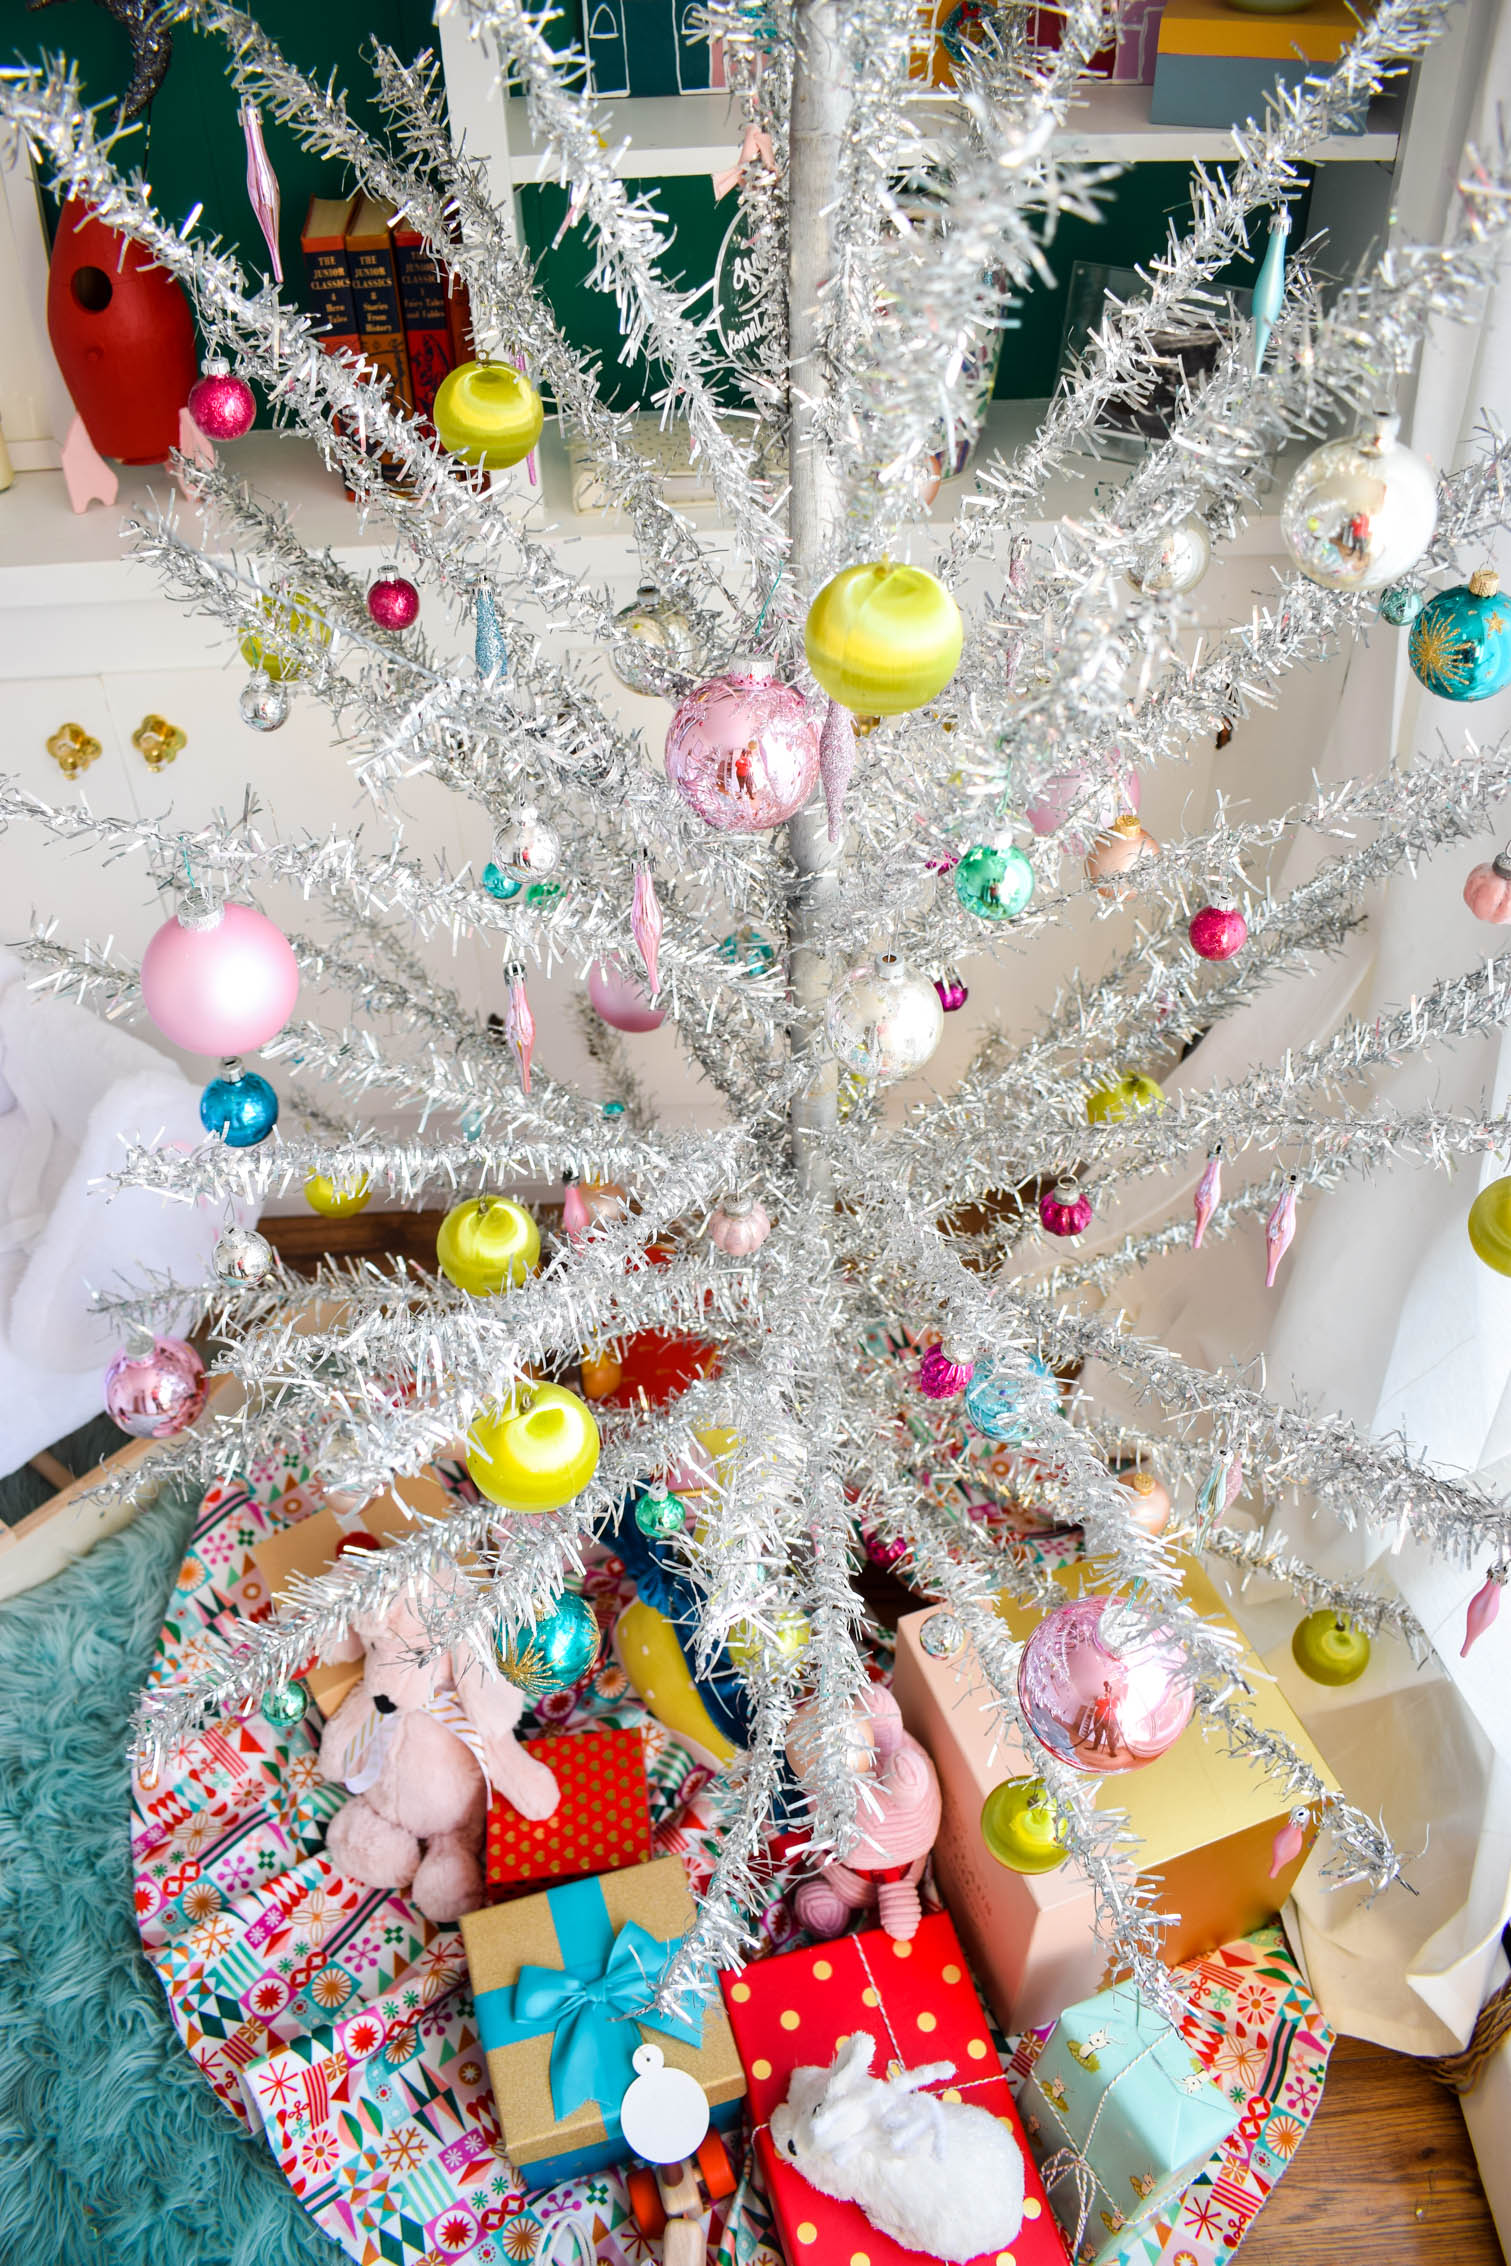 Bring pastels and vintage charm to a tinsel chrismas tree, using simple and clean ornaments. Sprinkle teddy bears and toys with boys for a nursery charm.